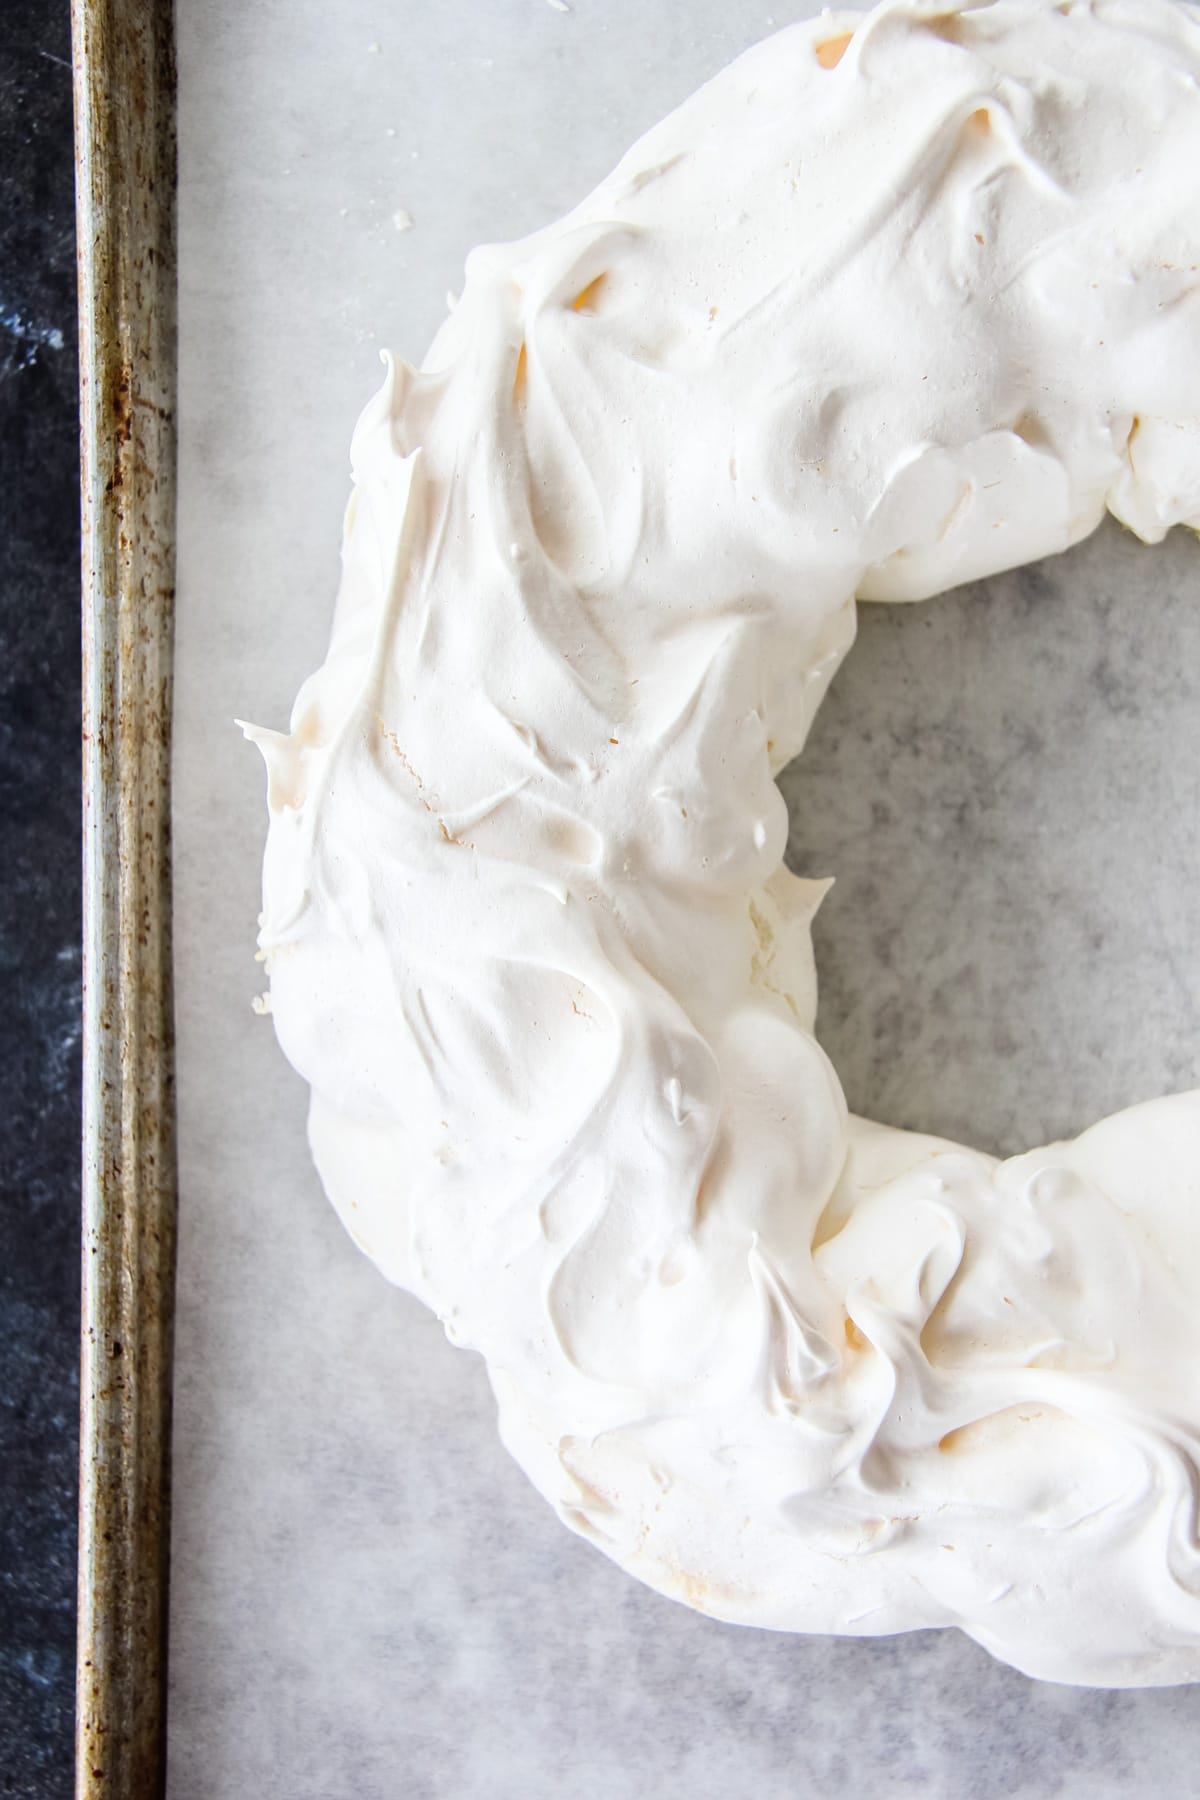 A top down view of a baking sheet with a baked pavlova in the shape of a wreath.